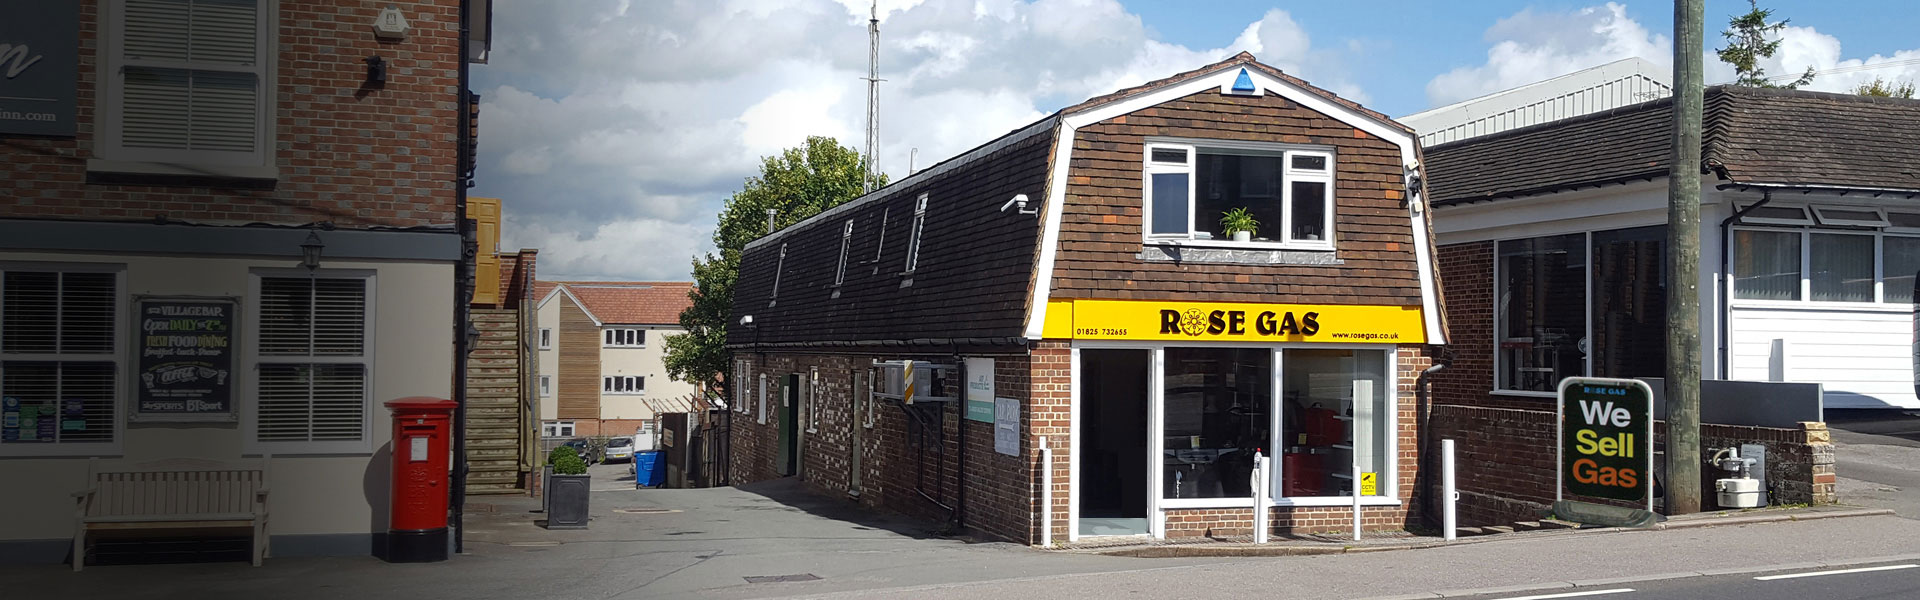 ROSE GAS SHOP OPEN NOW - BBQs - Patio Heaters - Gas Fires - Tools & Welding Consumables